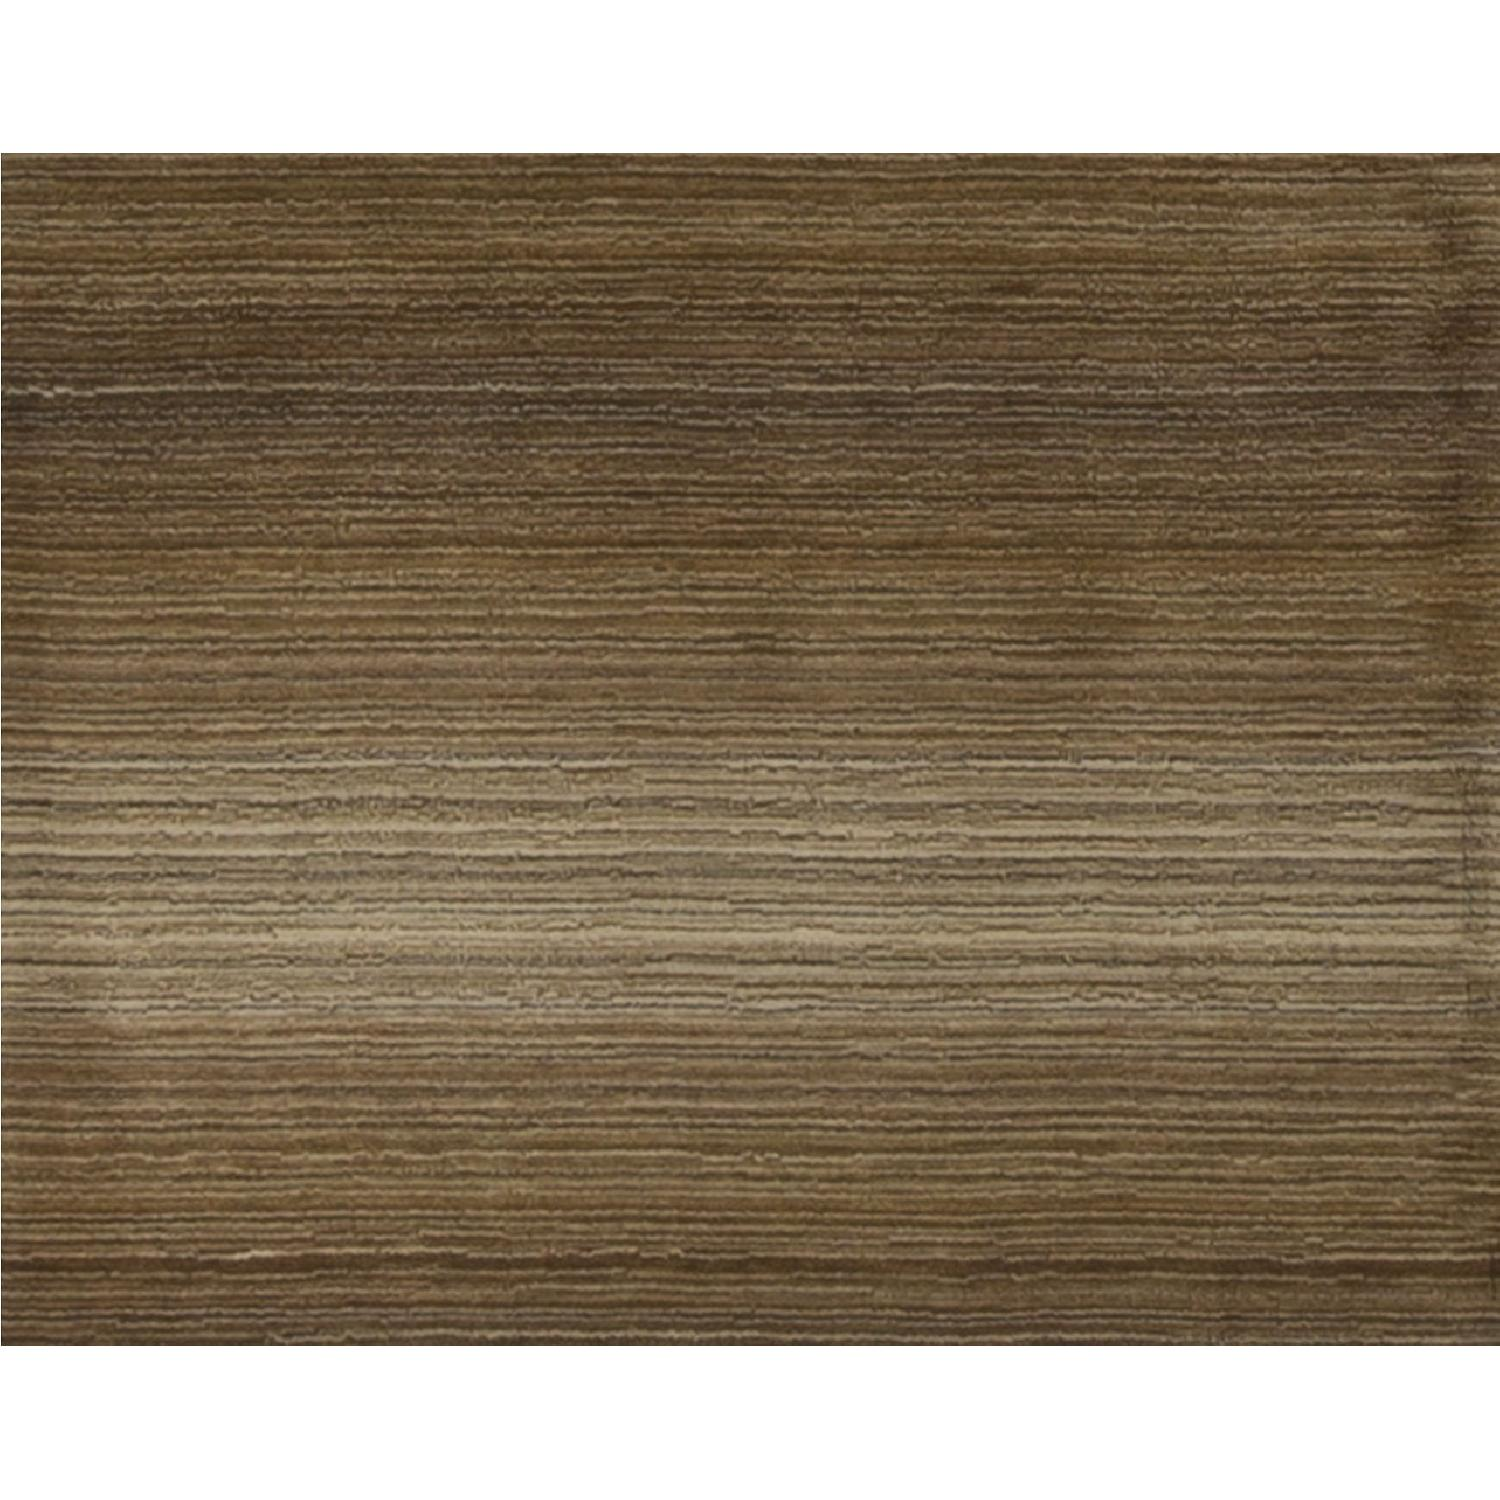 Modern Contemporary Hand Knotted Wool Rug in Brown - image-3